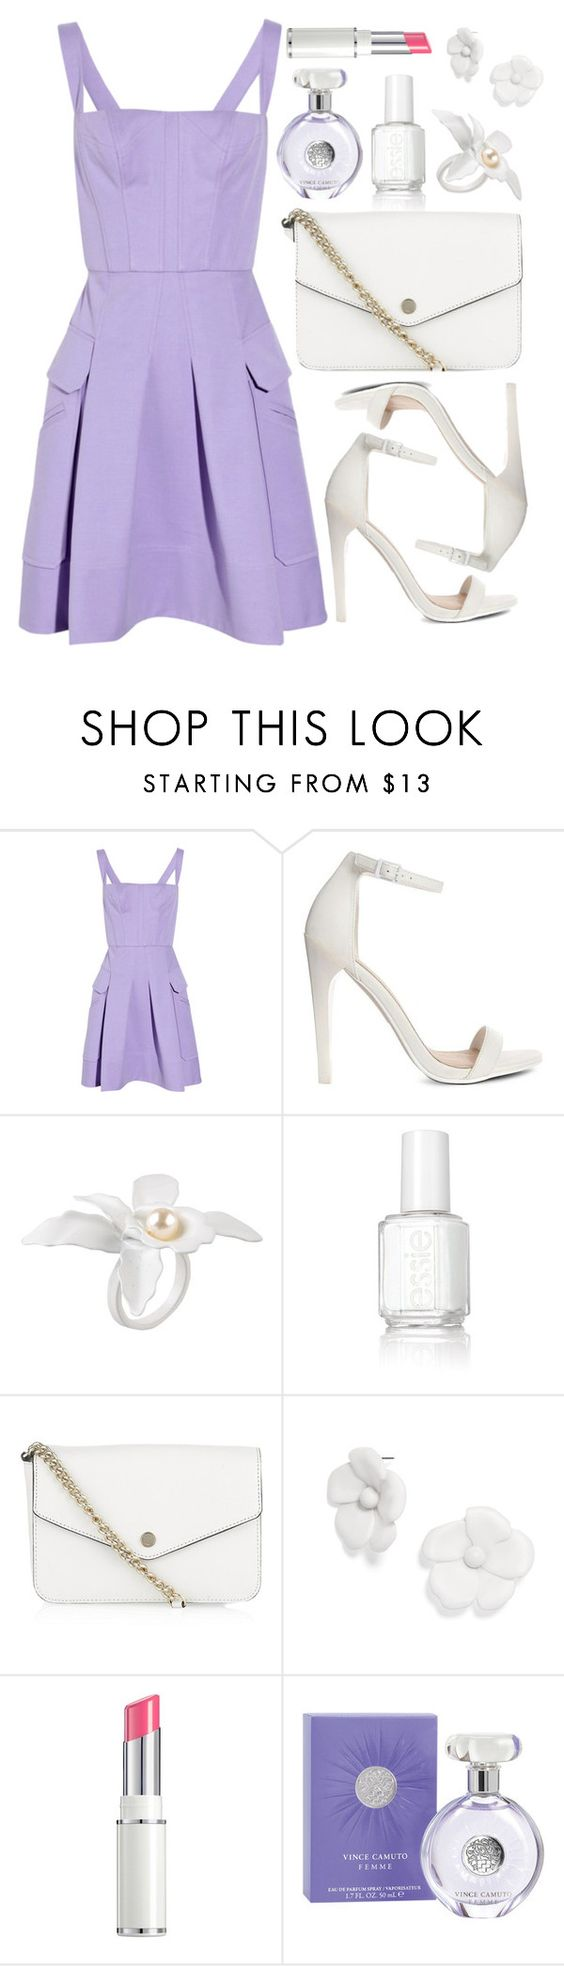 """""""Untitled #3592"""" by natalyasidunova ❤ liked on Polyvore featuring Versace, ASOS, Jenny Packham, Essie, MICHAEL Michael Kors, BaubleBar, Lancôme, Vince Camuto, women's clothing and women"""